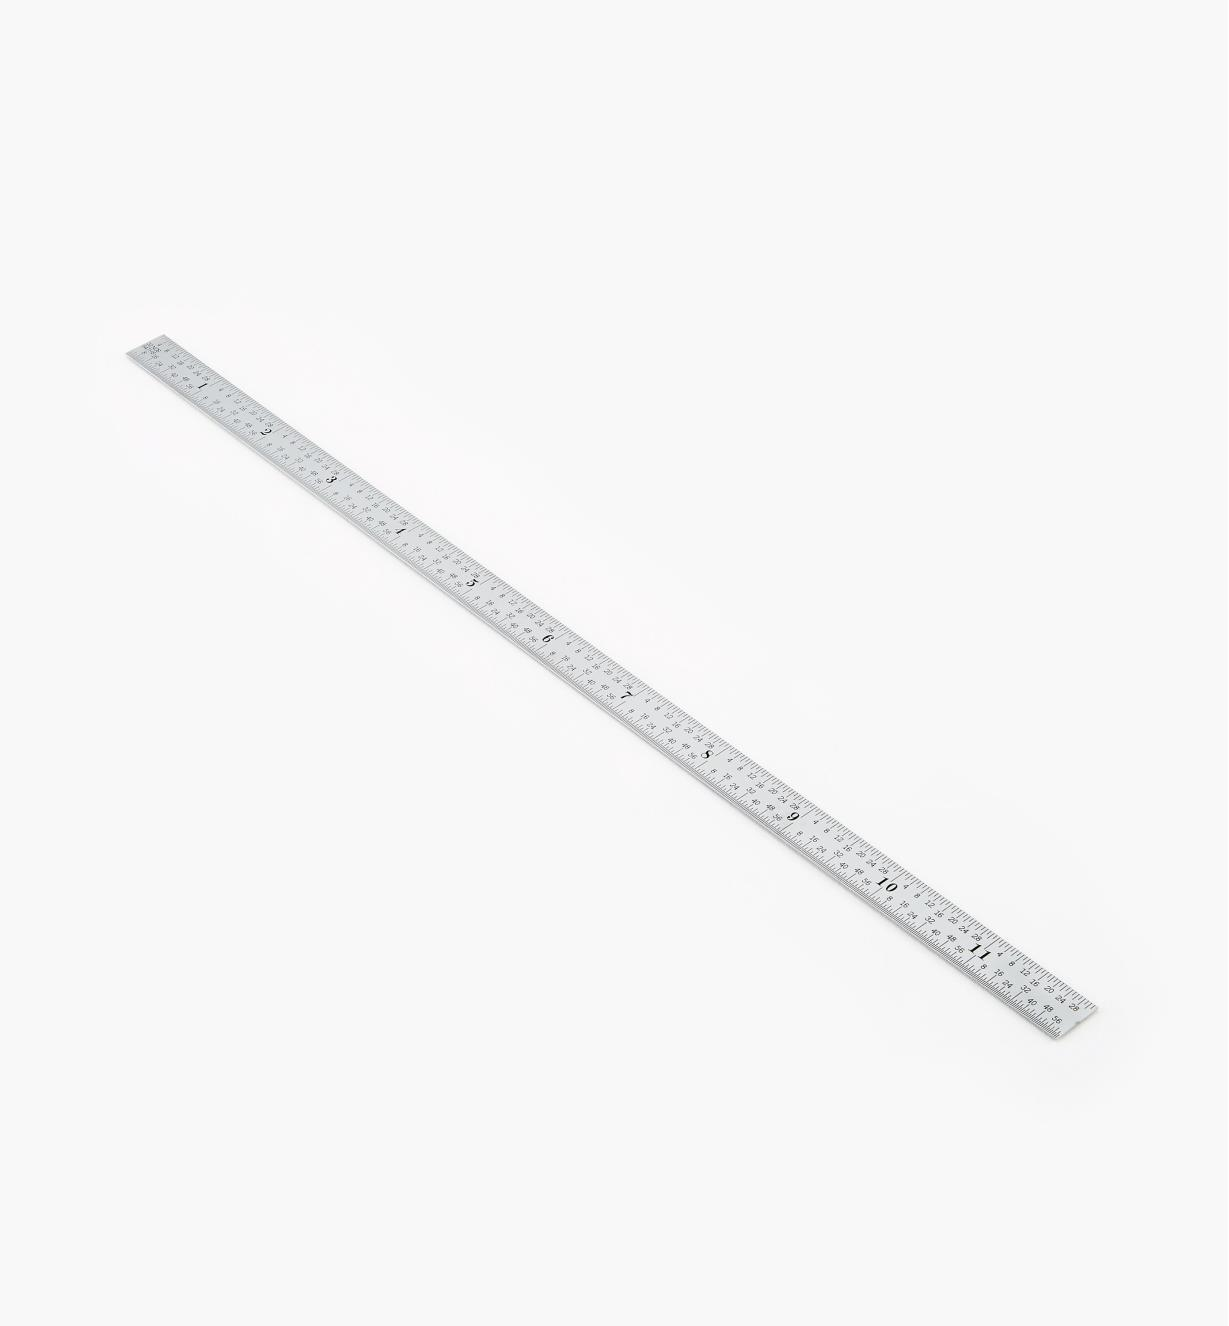 "30N0811 - Starrett 16R Flexible Rule, 12"" x 1/2"""